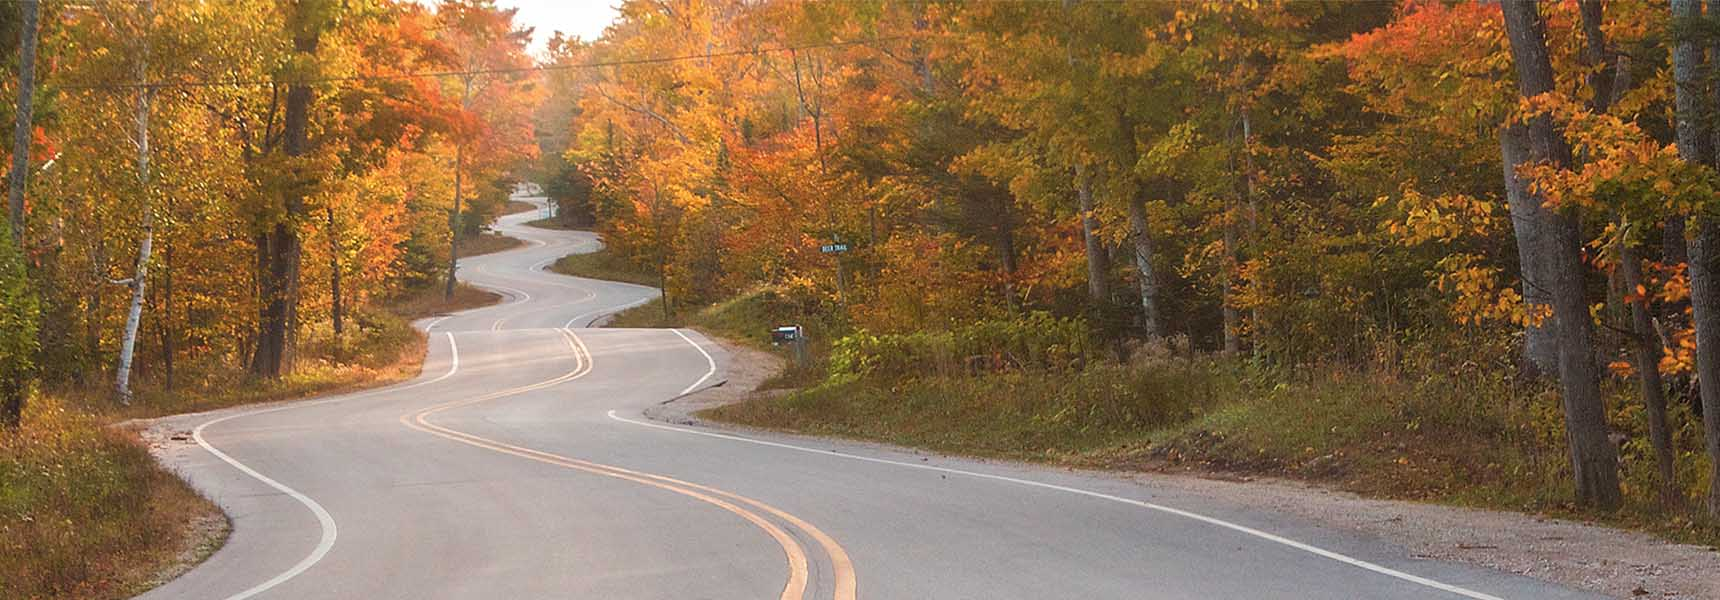 Photo of a winding road indicating the twists and turns of the market reacting to market volatility.